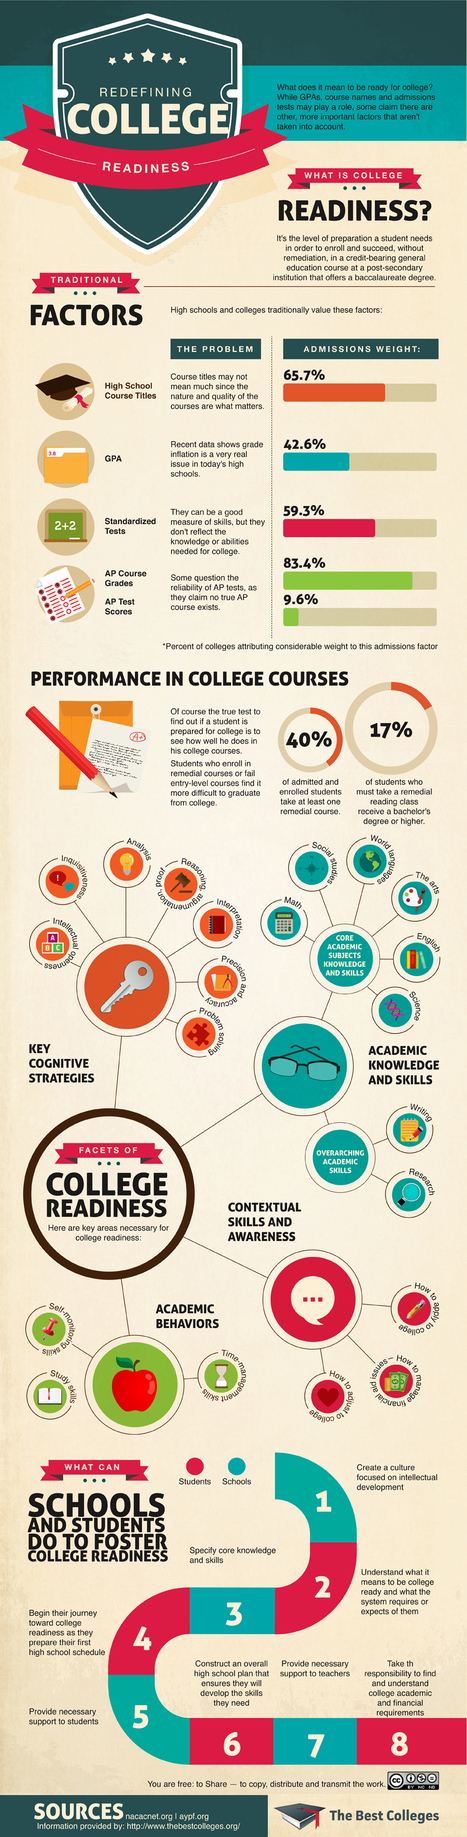 Infographic: What Is College Readiness? | amberosgoodbyce | Scoop.it